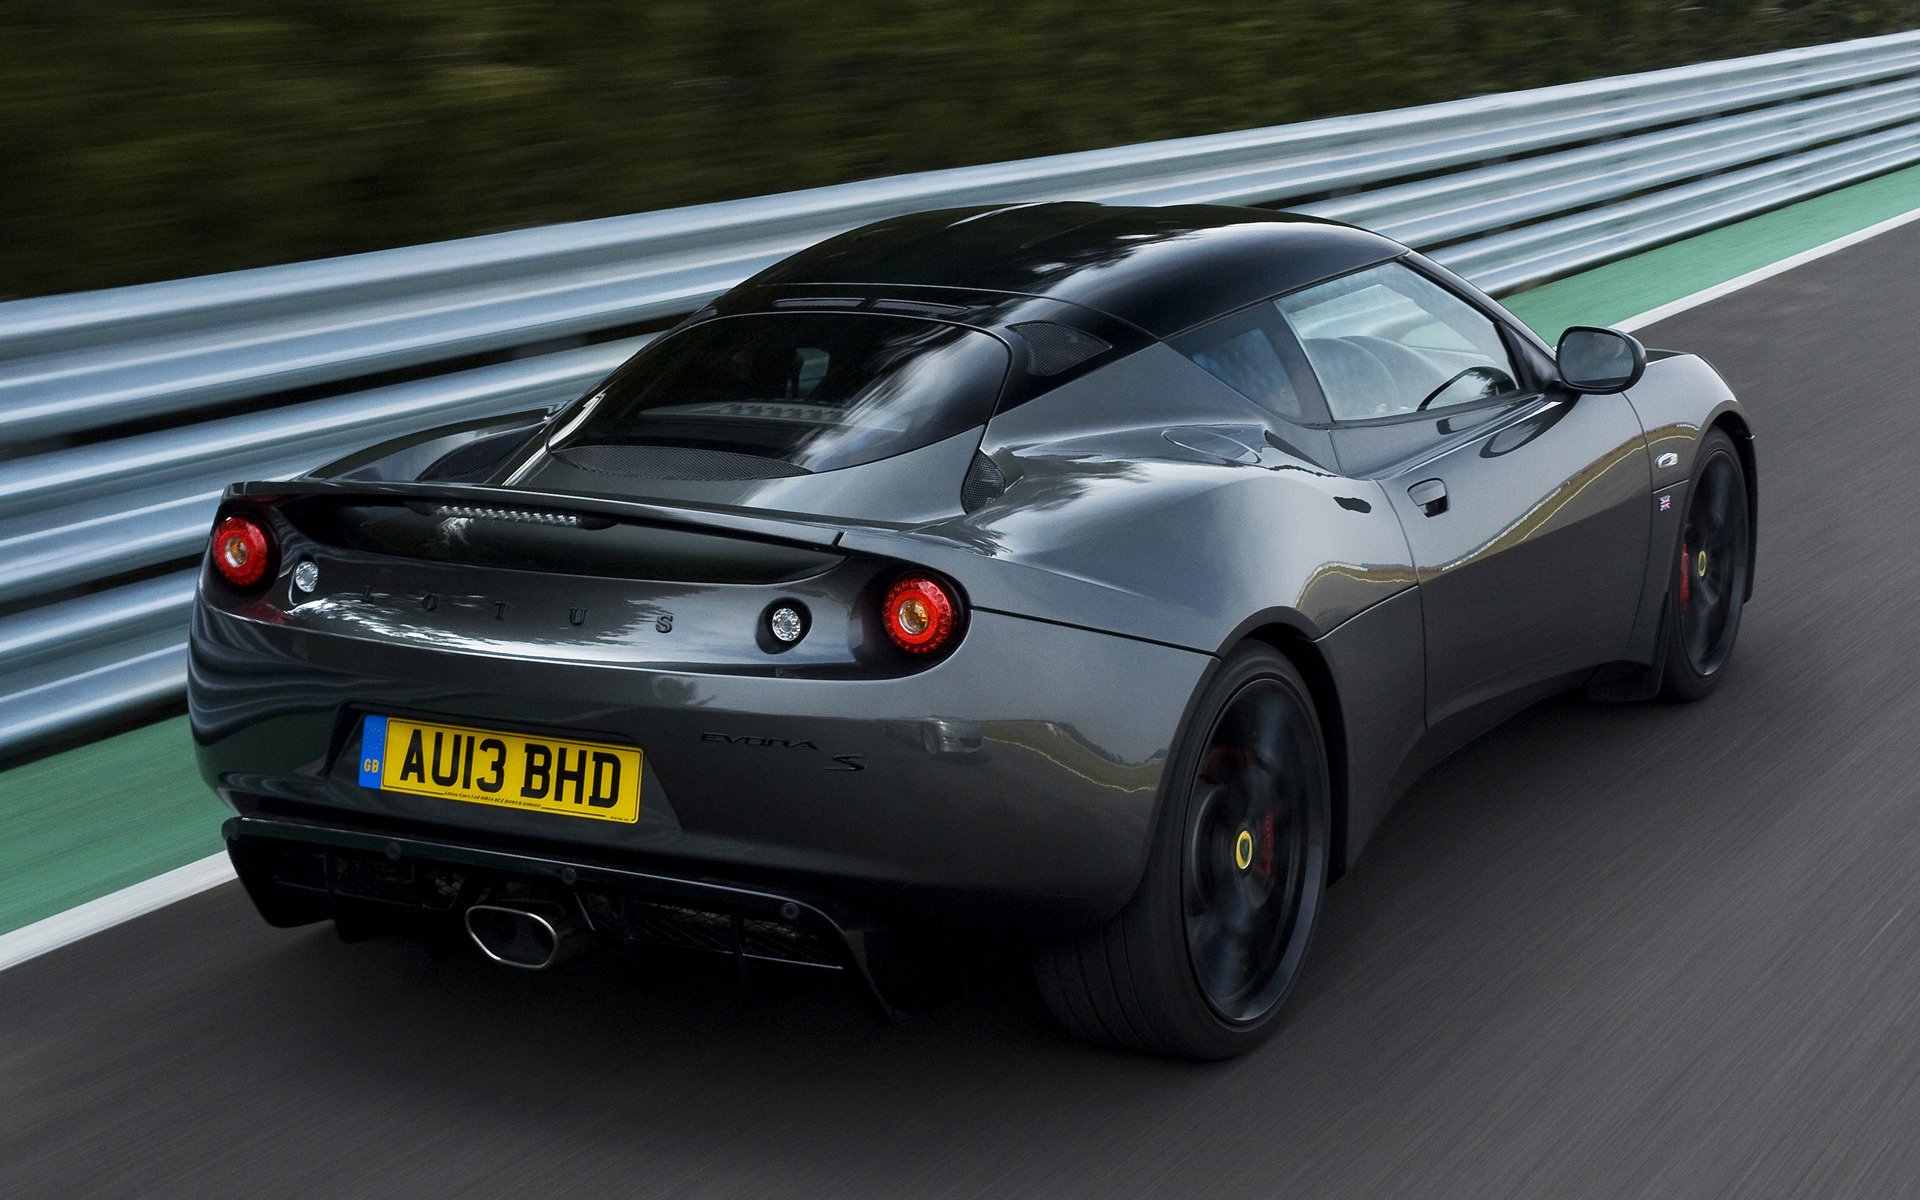 https://www.carpixel.net/w/0cfdd2497479b573d876f33c5c67a4f5/lotus-evora-s-sports-racer-car-wallpaper-41999.jpg